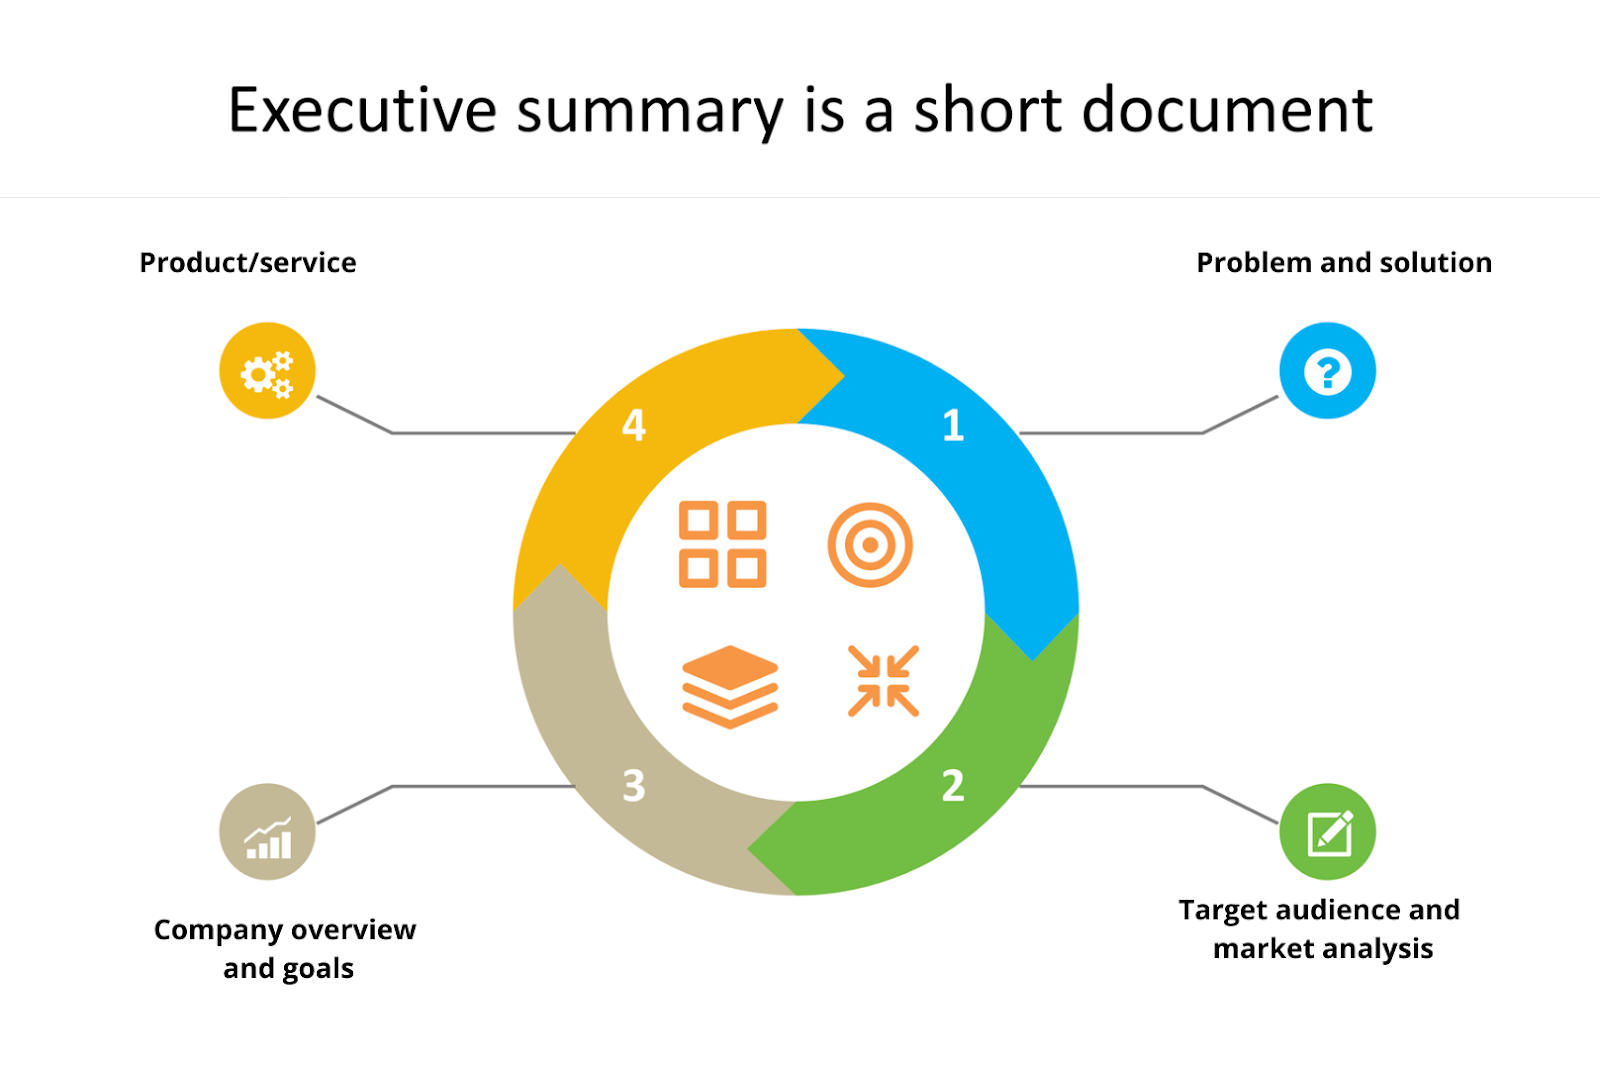 executive summary is a short document